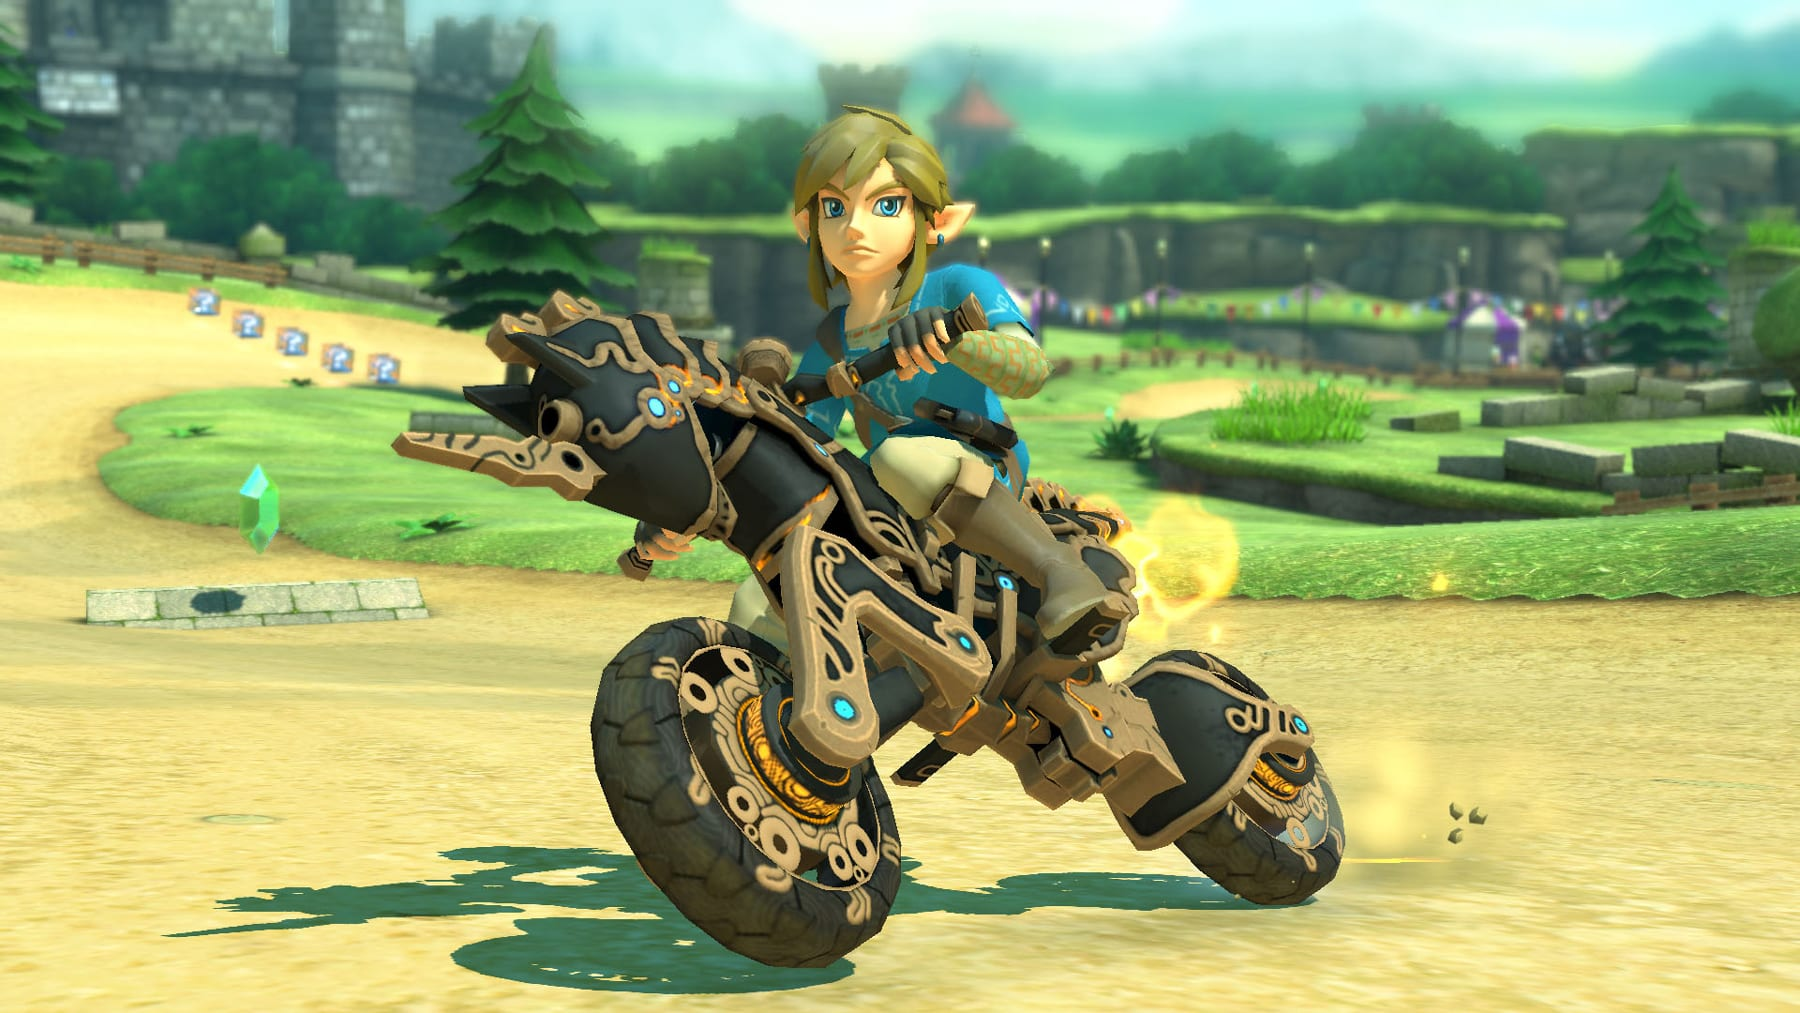 Mario Kart 8 Deluxe' update adds Link from 'Breath of the Wild'